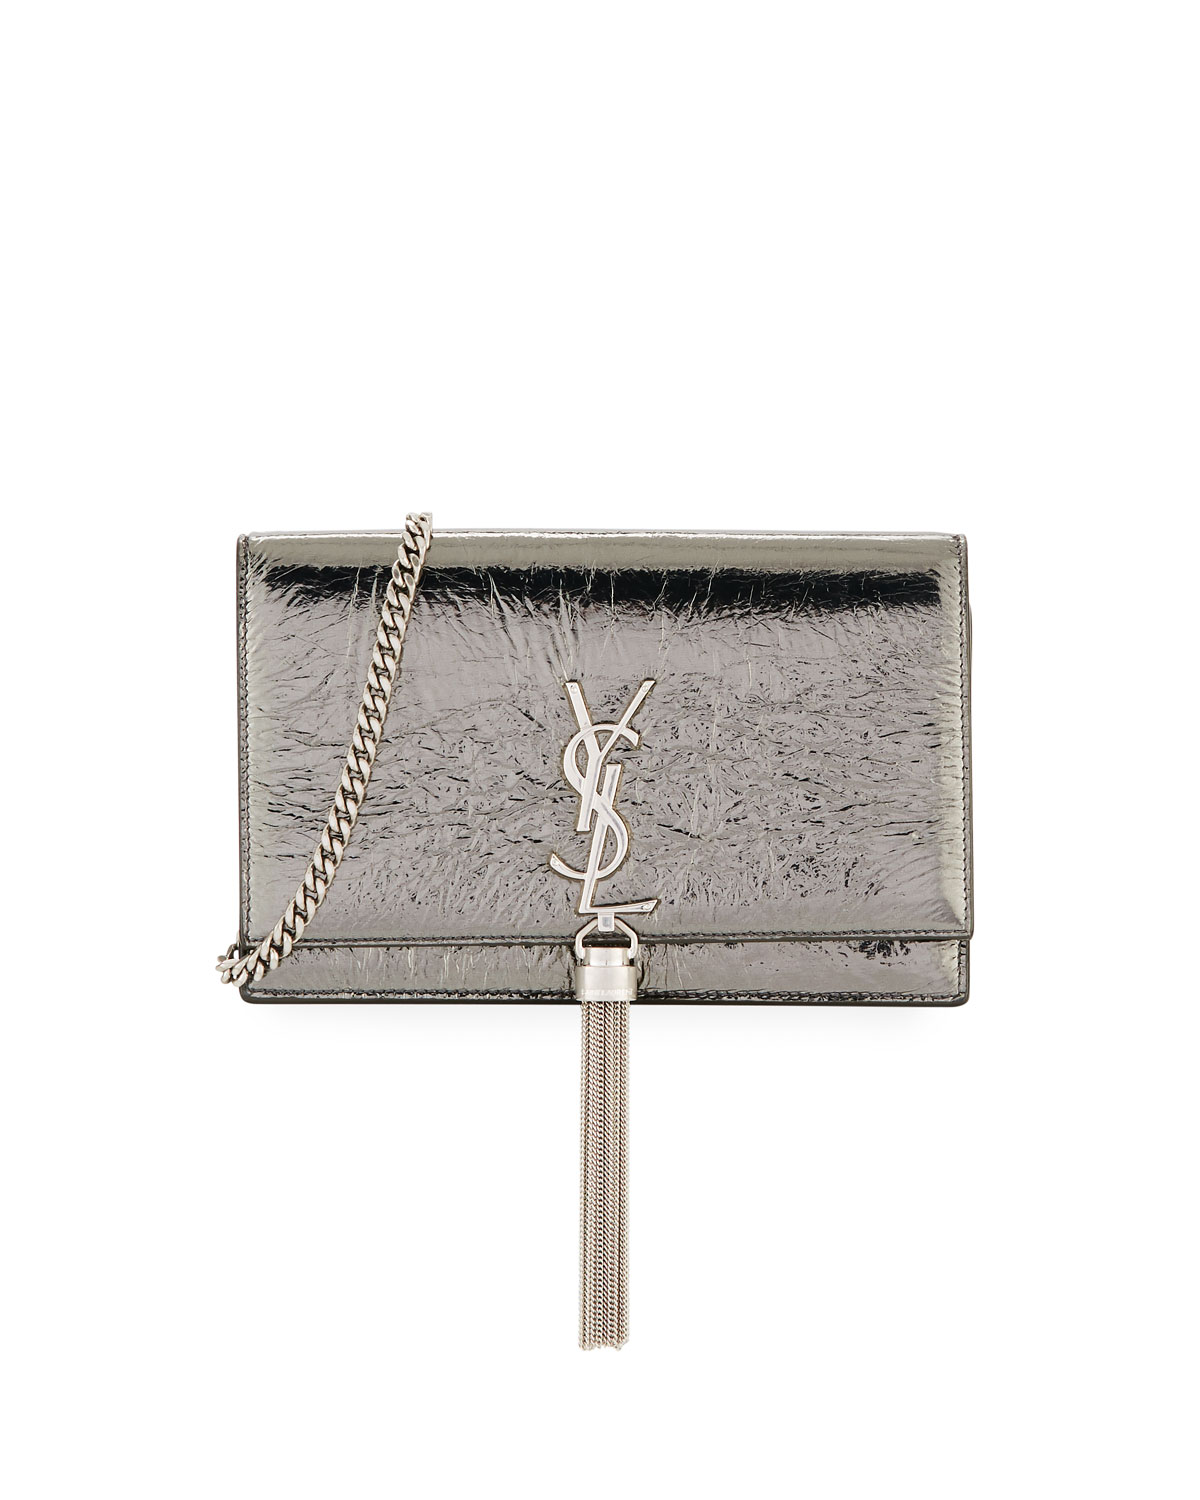 Saint LaurentMonogram YSL Kate Crinkled Metallic Tassel Wallet on Chain cfb38edf668d1